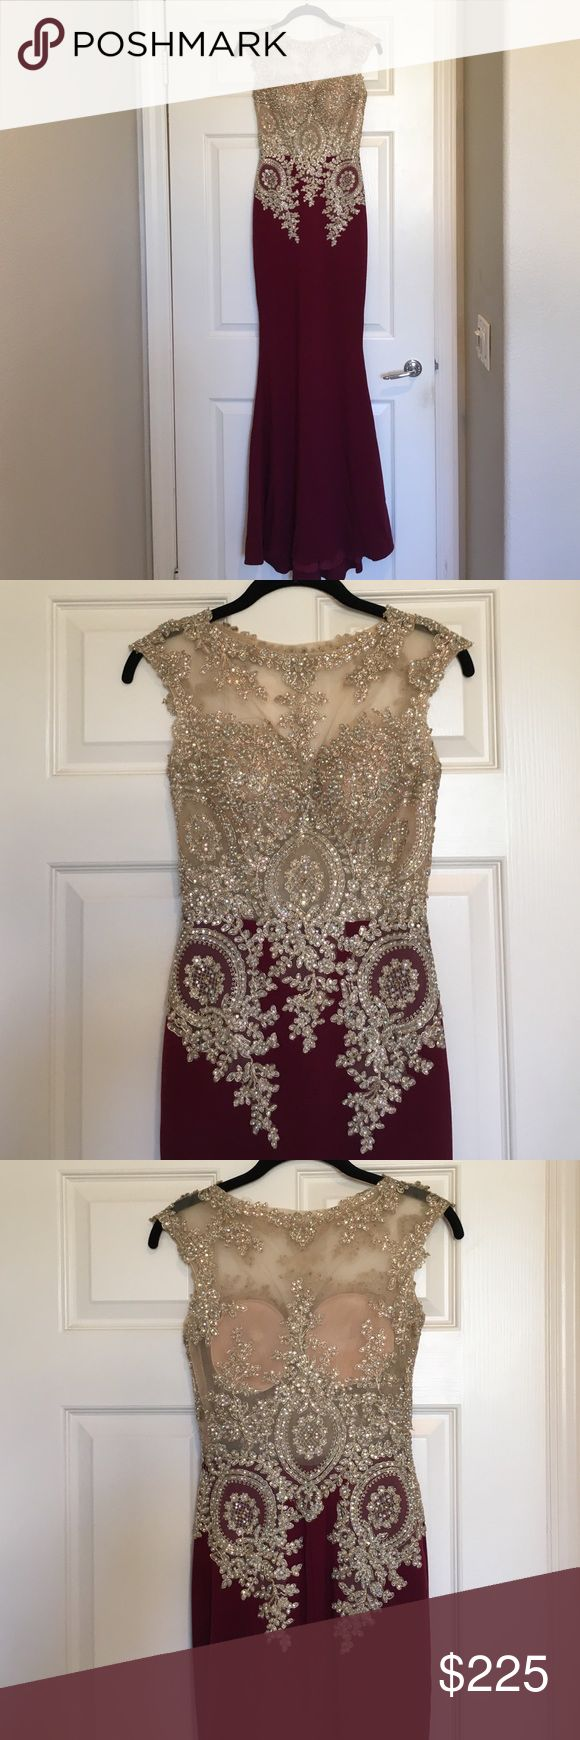 """Maroon and gold prom/formal dress Worn just once, condition is like new. The fit is fitted and bottom goes out in mermaid like style. This was altered already. I am a size xs/s, 5'4"""" and I wore 4-5 inch heels. Dresses Prom"""